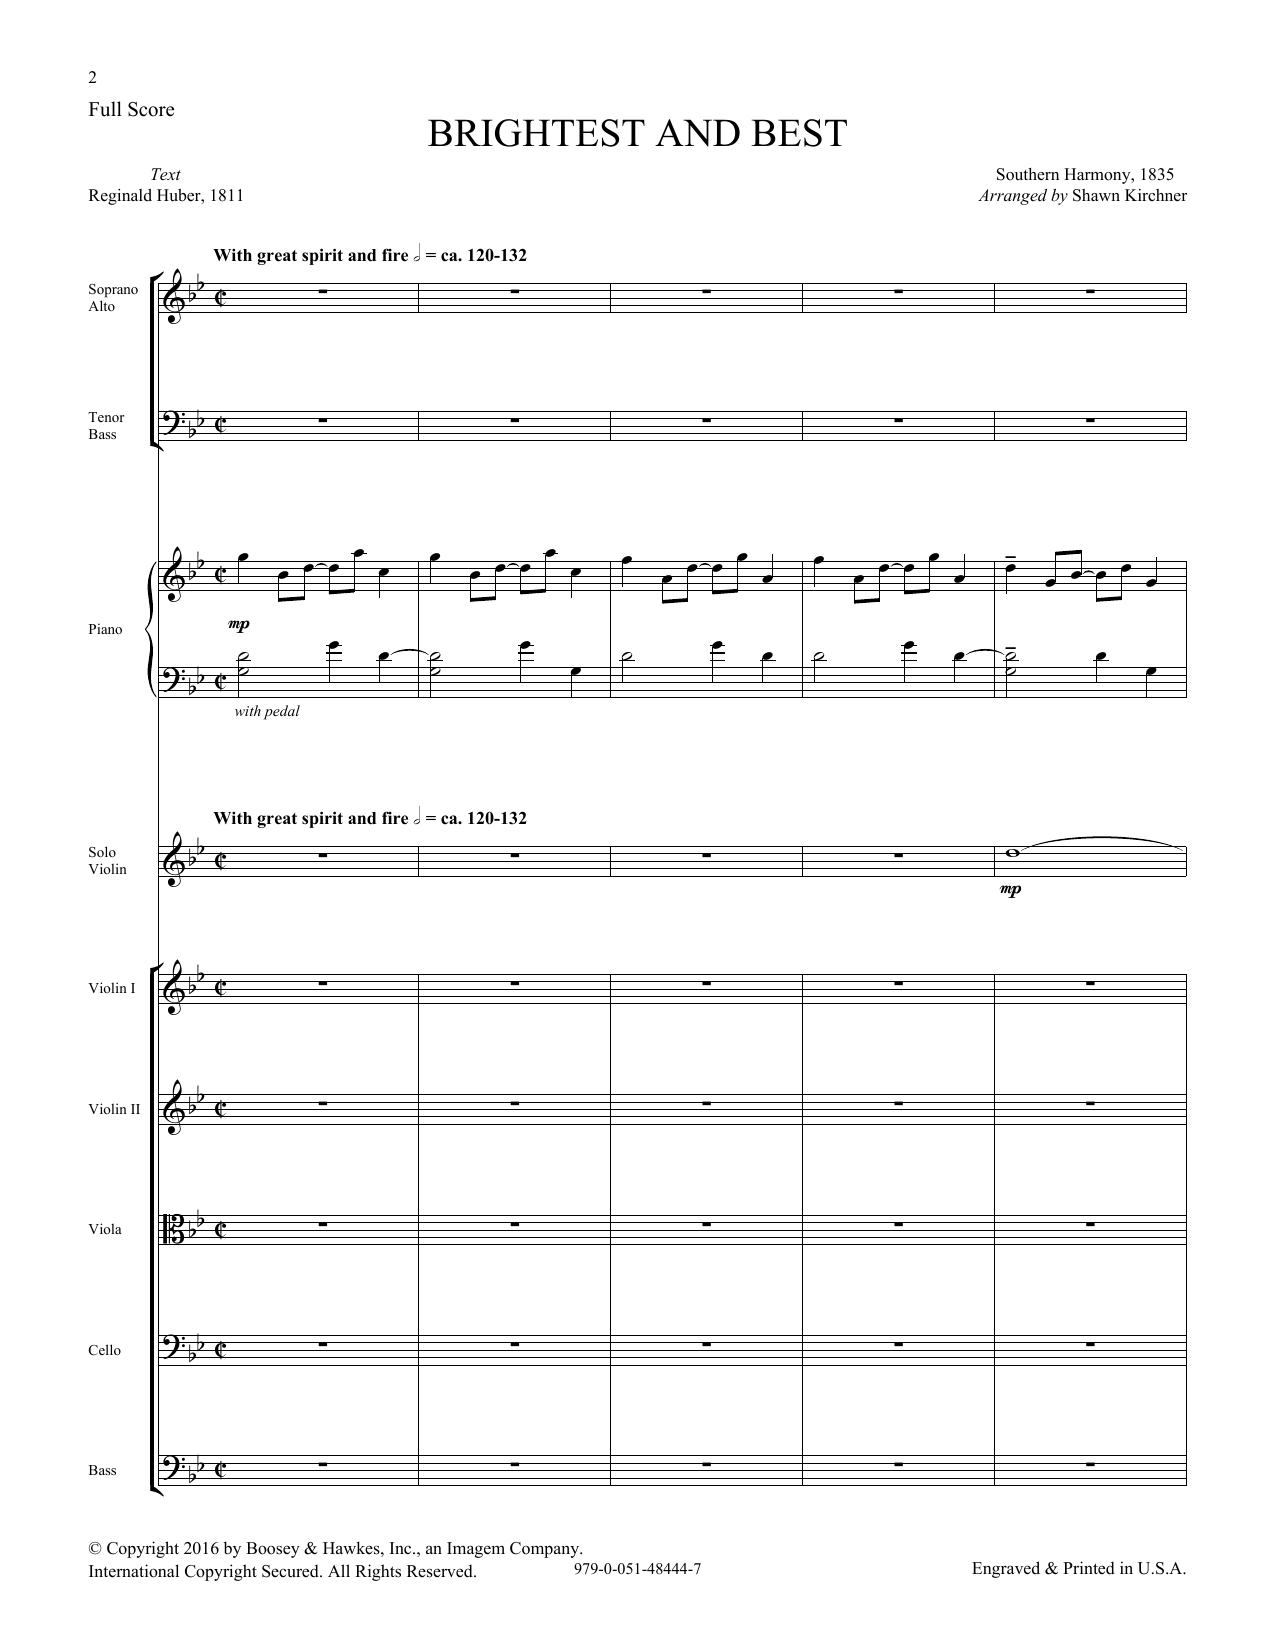 Brightest and Best - Score Sheet Music